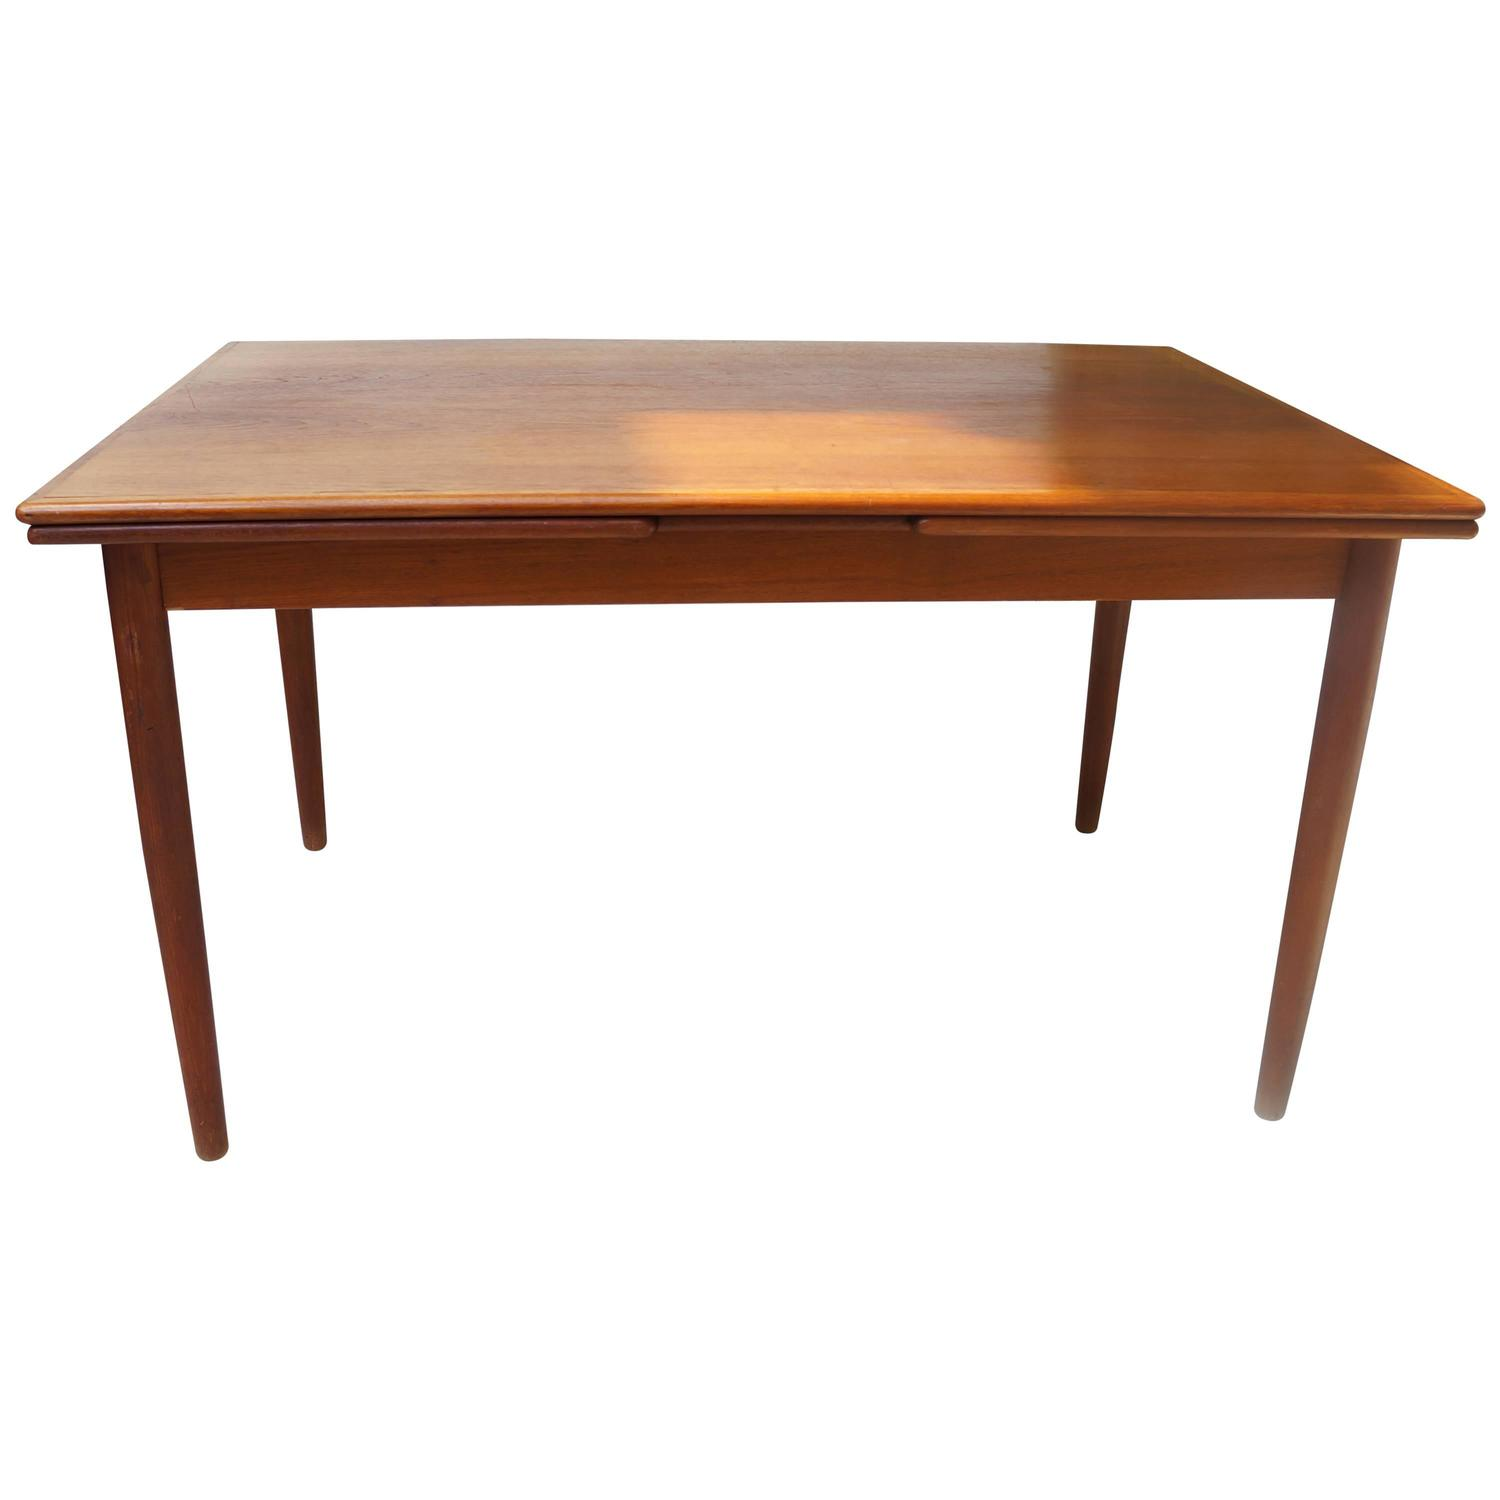 danish modern 1950s rectangular teak wooden dining table extendable